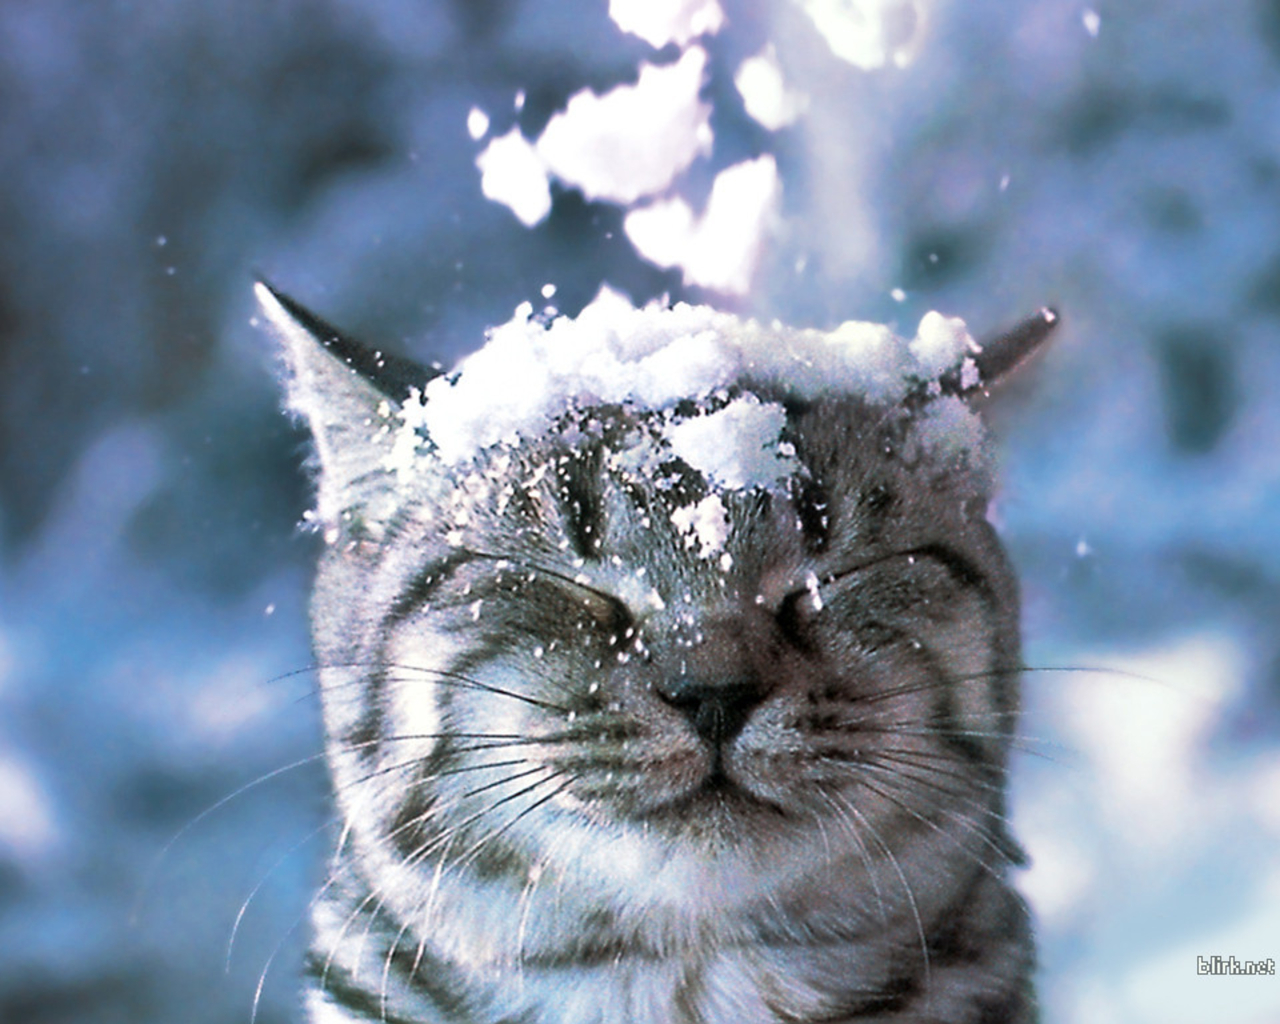 Cats images Cat in the Snow Wallpaper wallpaper photos 28363007 1280x1024